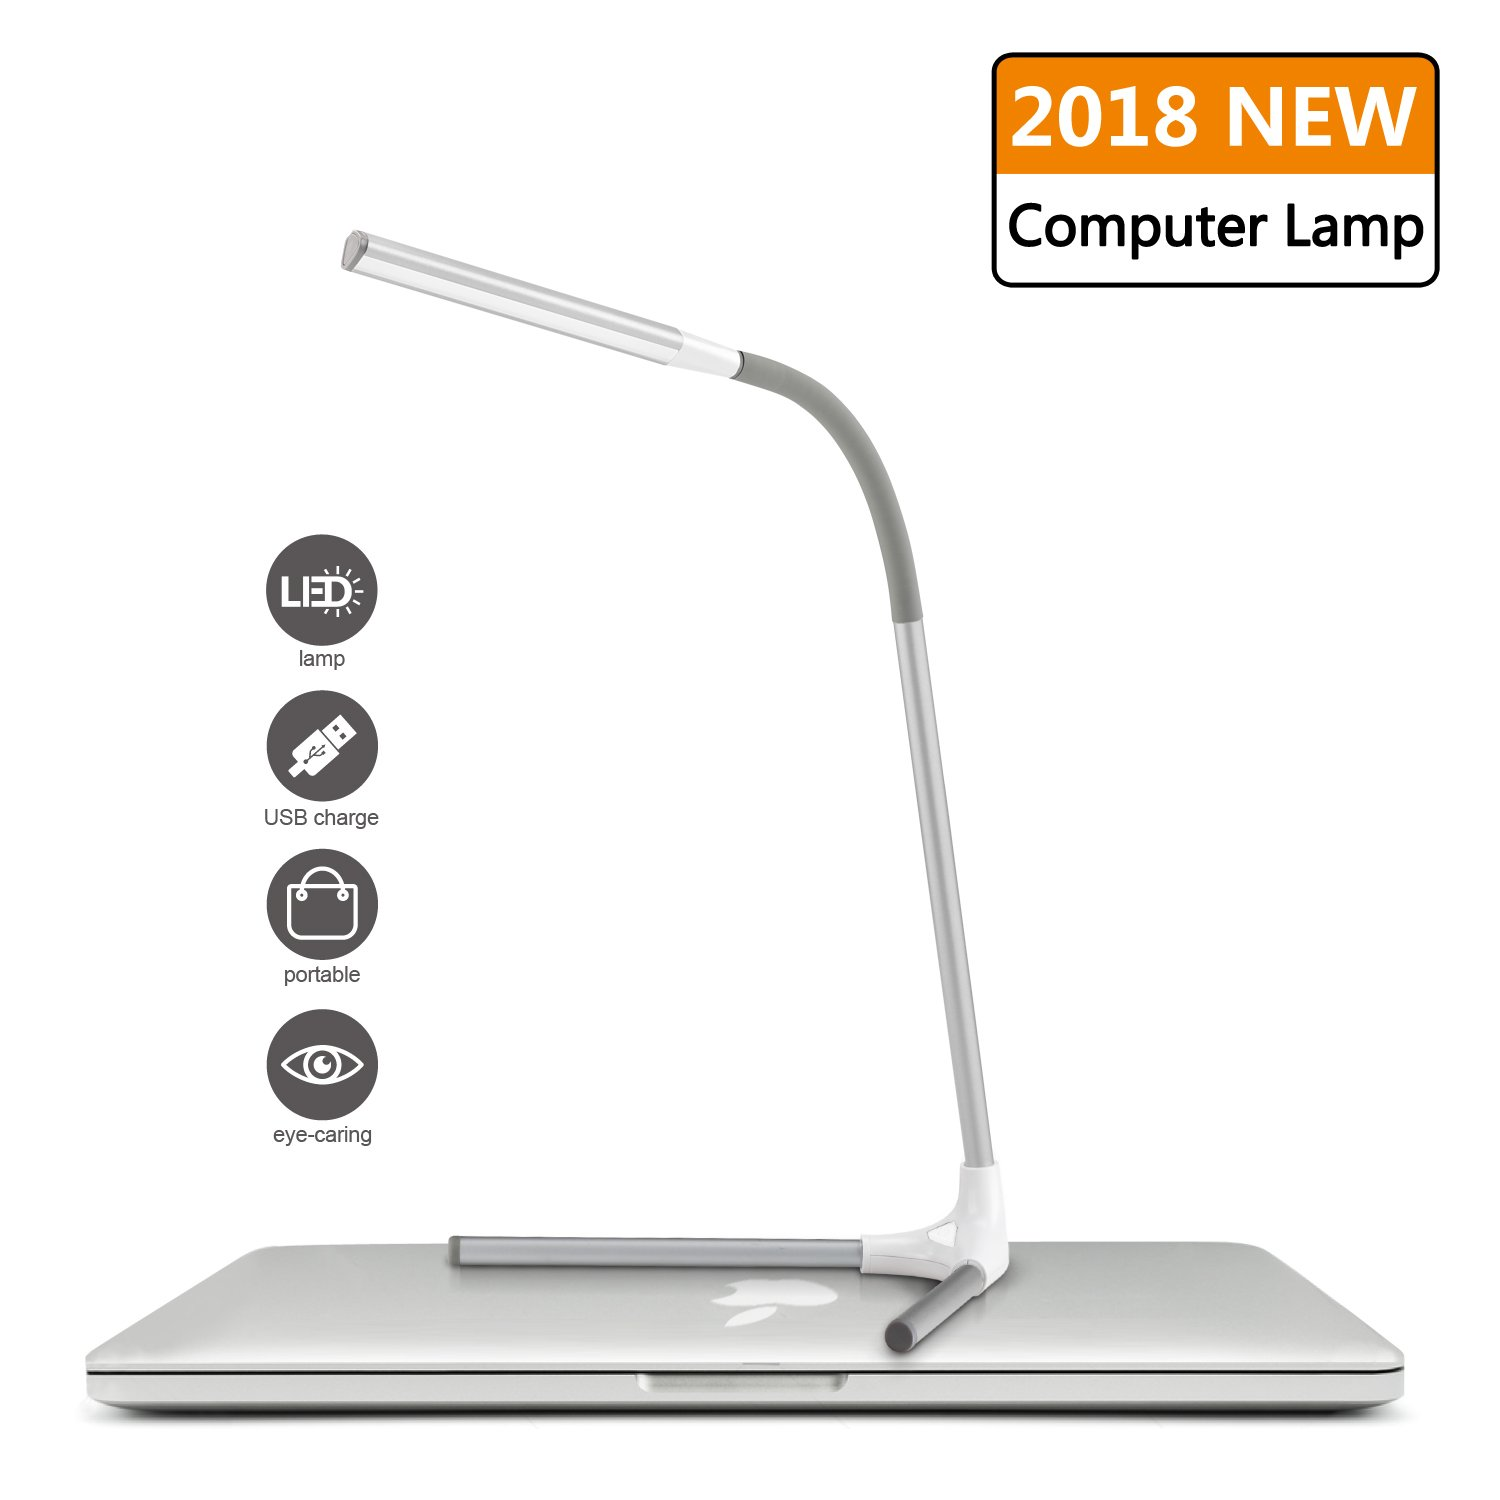 SPECTSUN White Desk Lamp, Detachable & Portable White Table Lamp, Eye-Caring Led Lamp with USB Charging Port, White Lamp/Desk Light/Table Light/Reading Lamp/Computer Desk Lamp/Small Desk Lamp